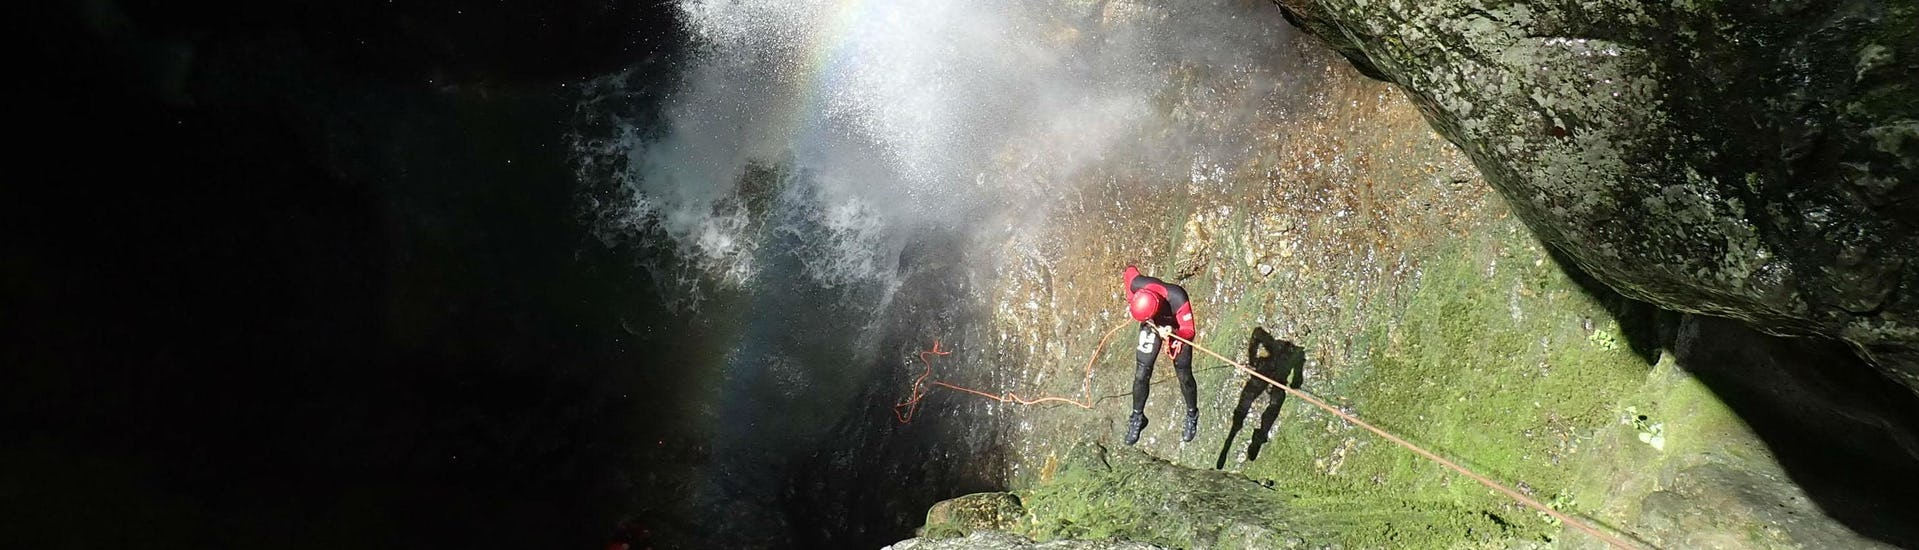 A canyoning enthusiast descends into a gorge by abseiling during a canyoning tour organised by Terréo Canyoning.